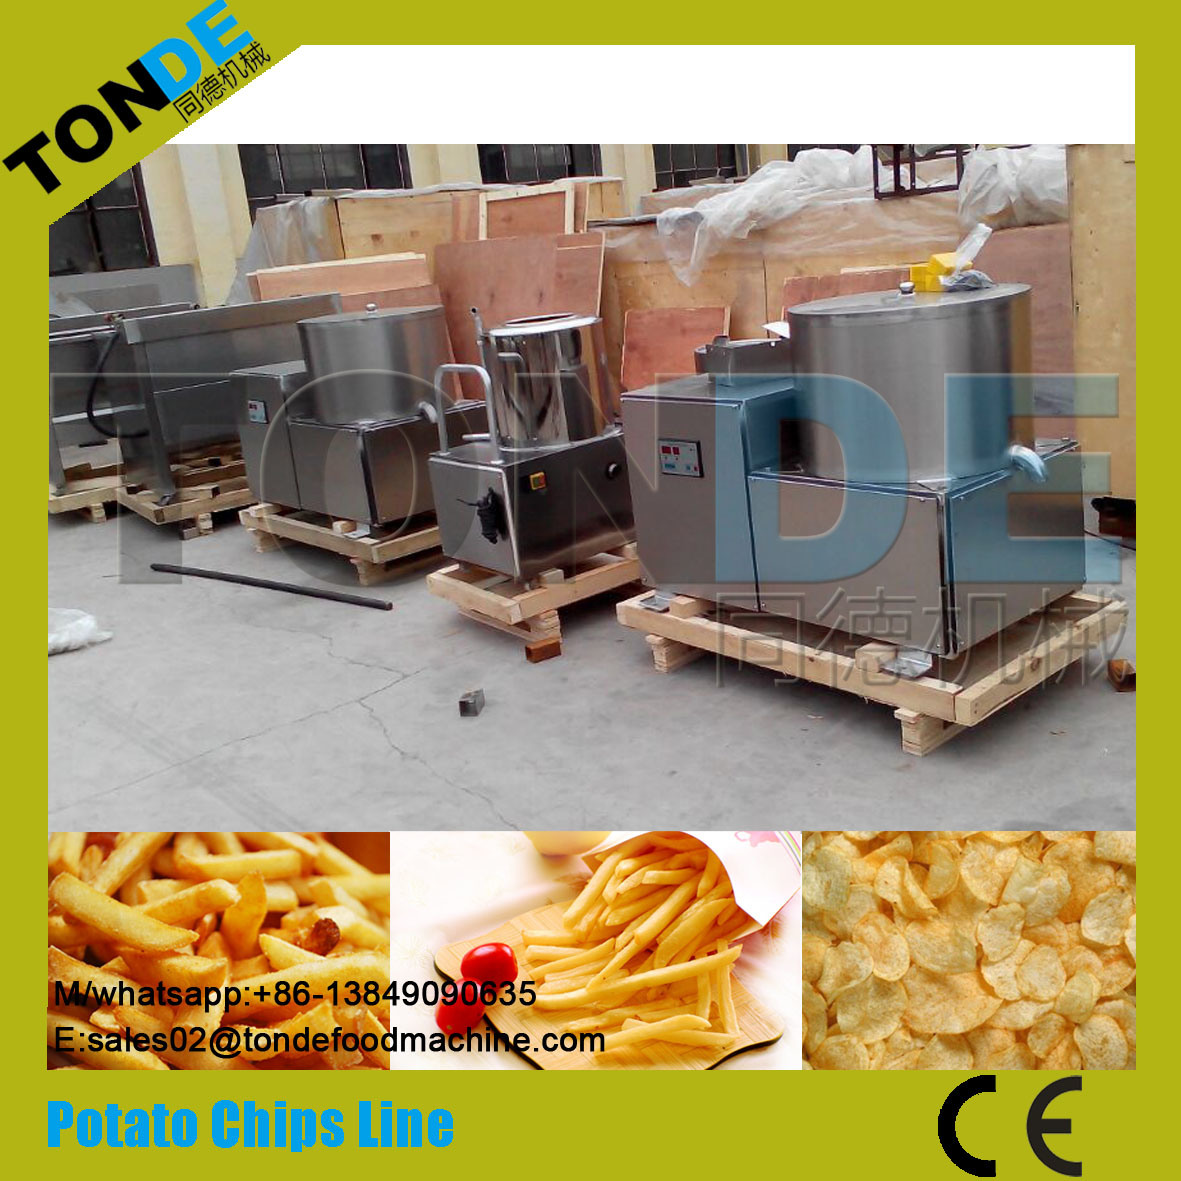 Semi Automatic Stainless Steel Electric Potato Chips Making Line